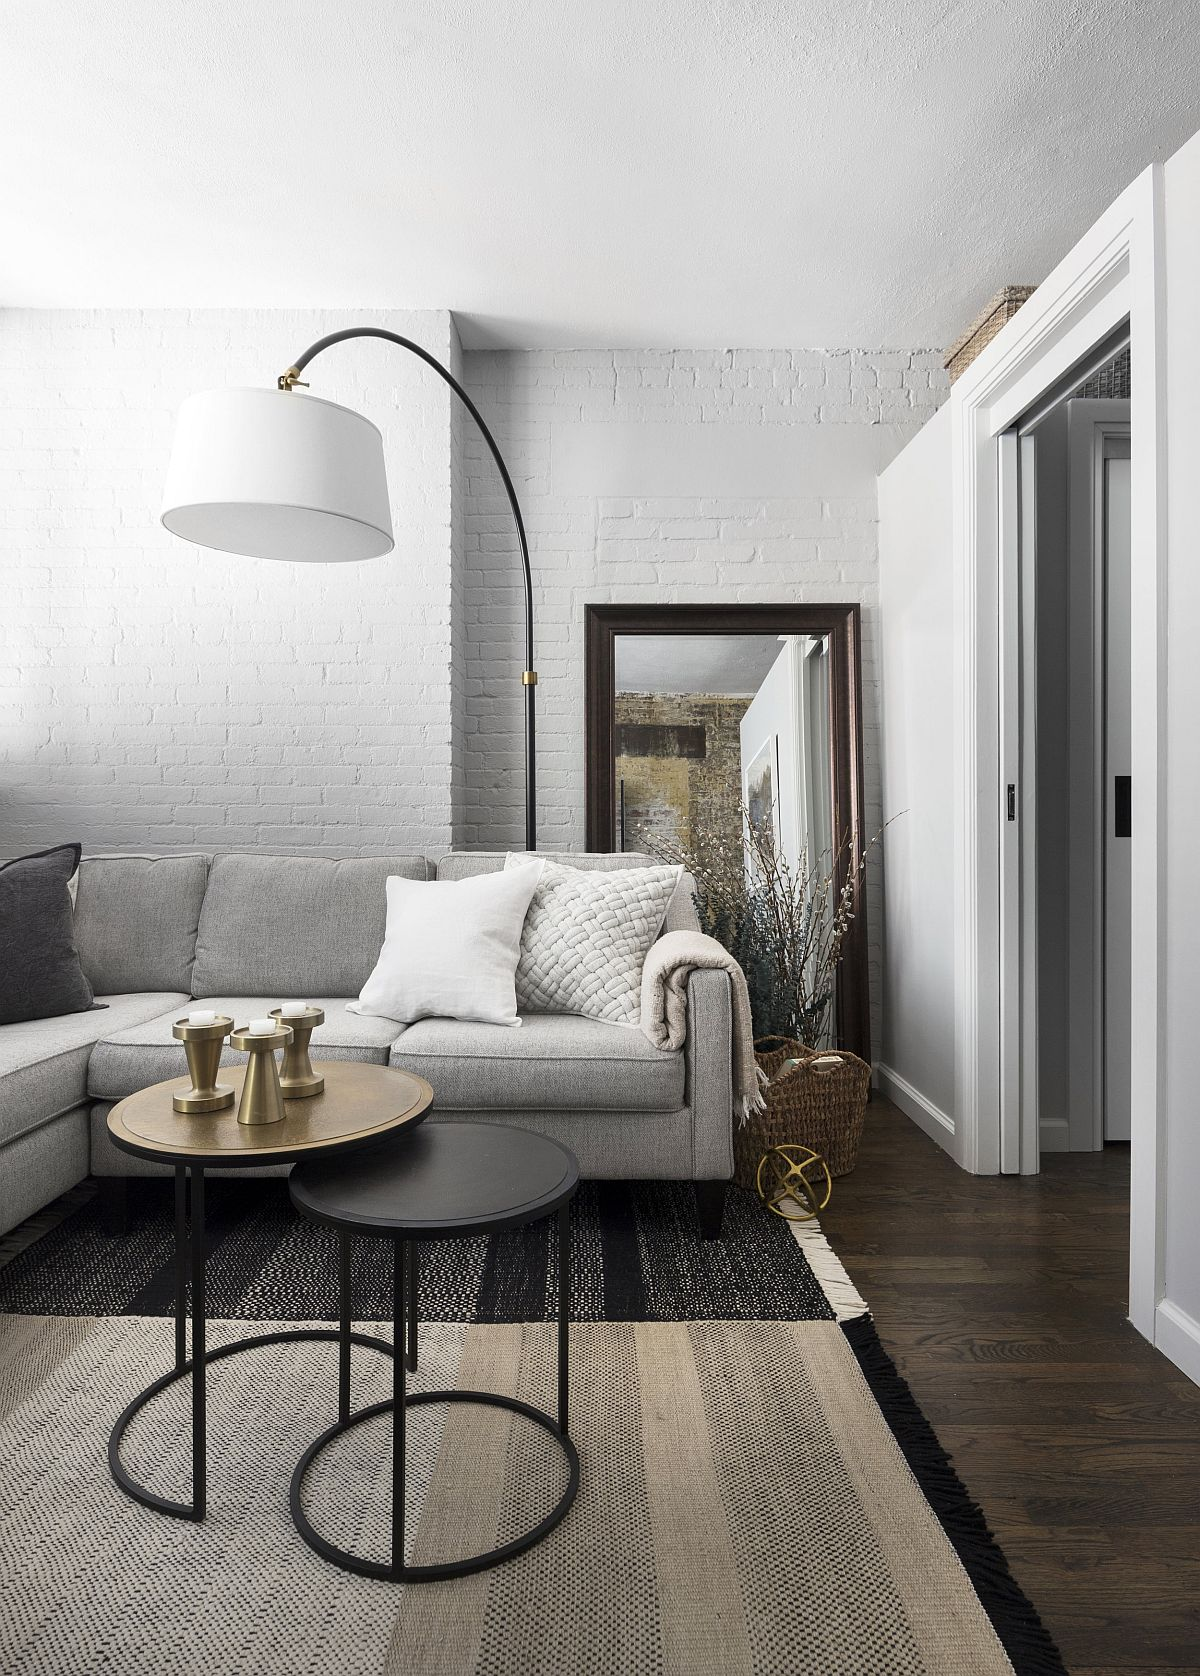 Gorgeous-white-brick-walls-inside-the-sudio-apartment-bring-New-York-Citys-uniqueness-to-the-living-space-13650